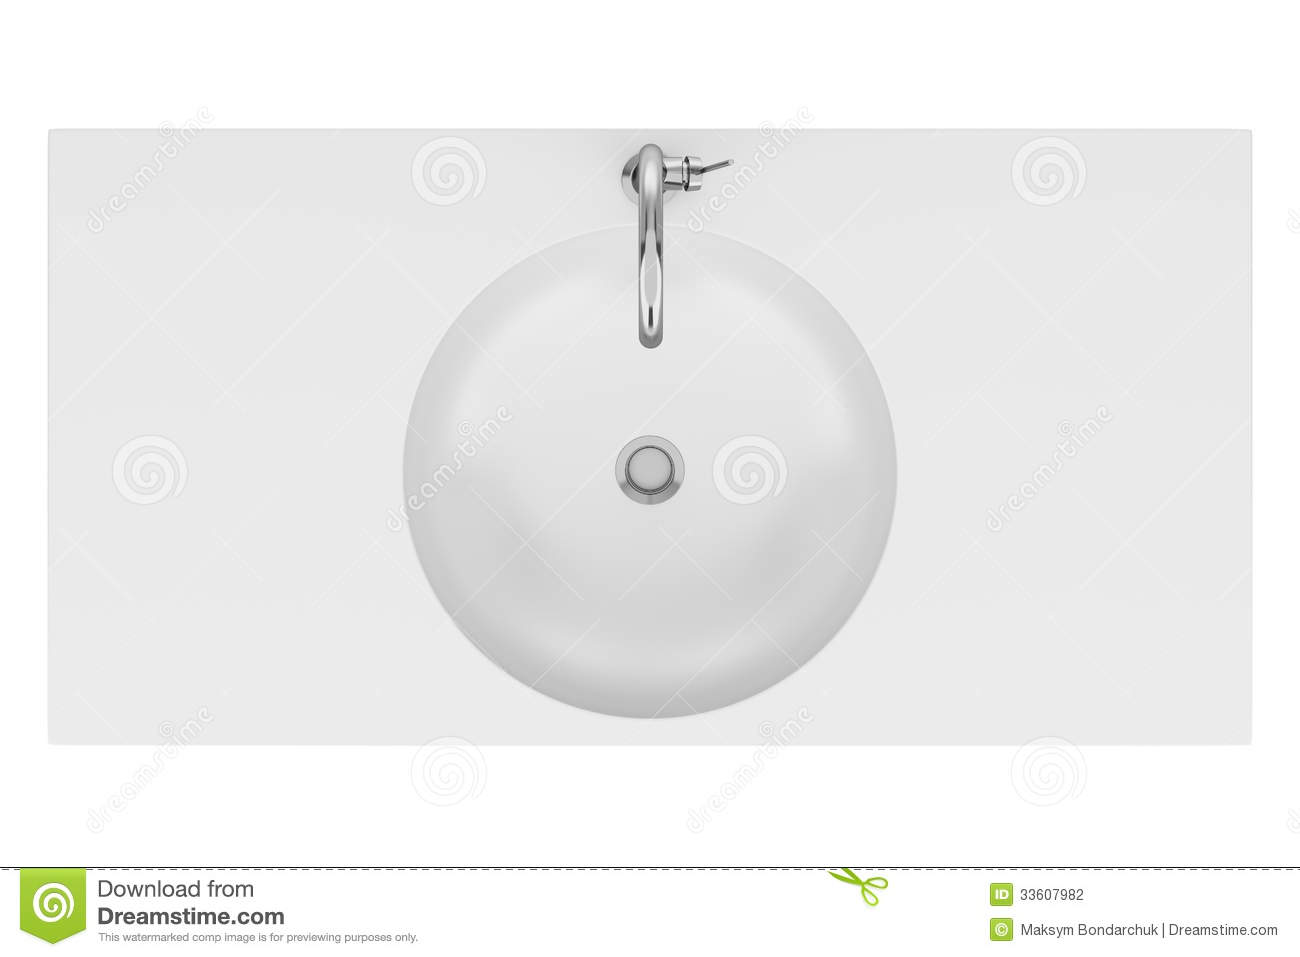 Bathroom sink top view - Top View Of Ceramic Bathroom Sink Isolated On White